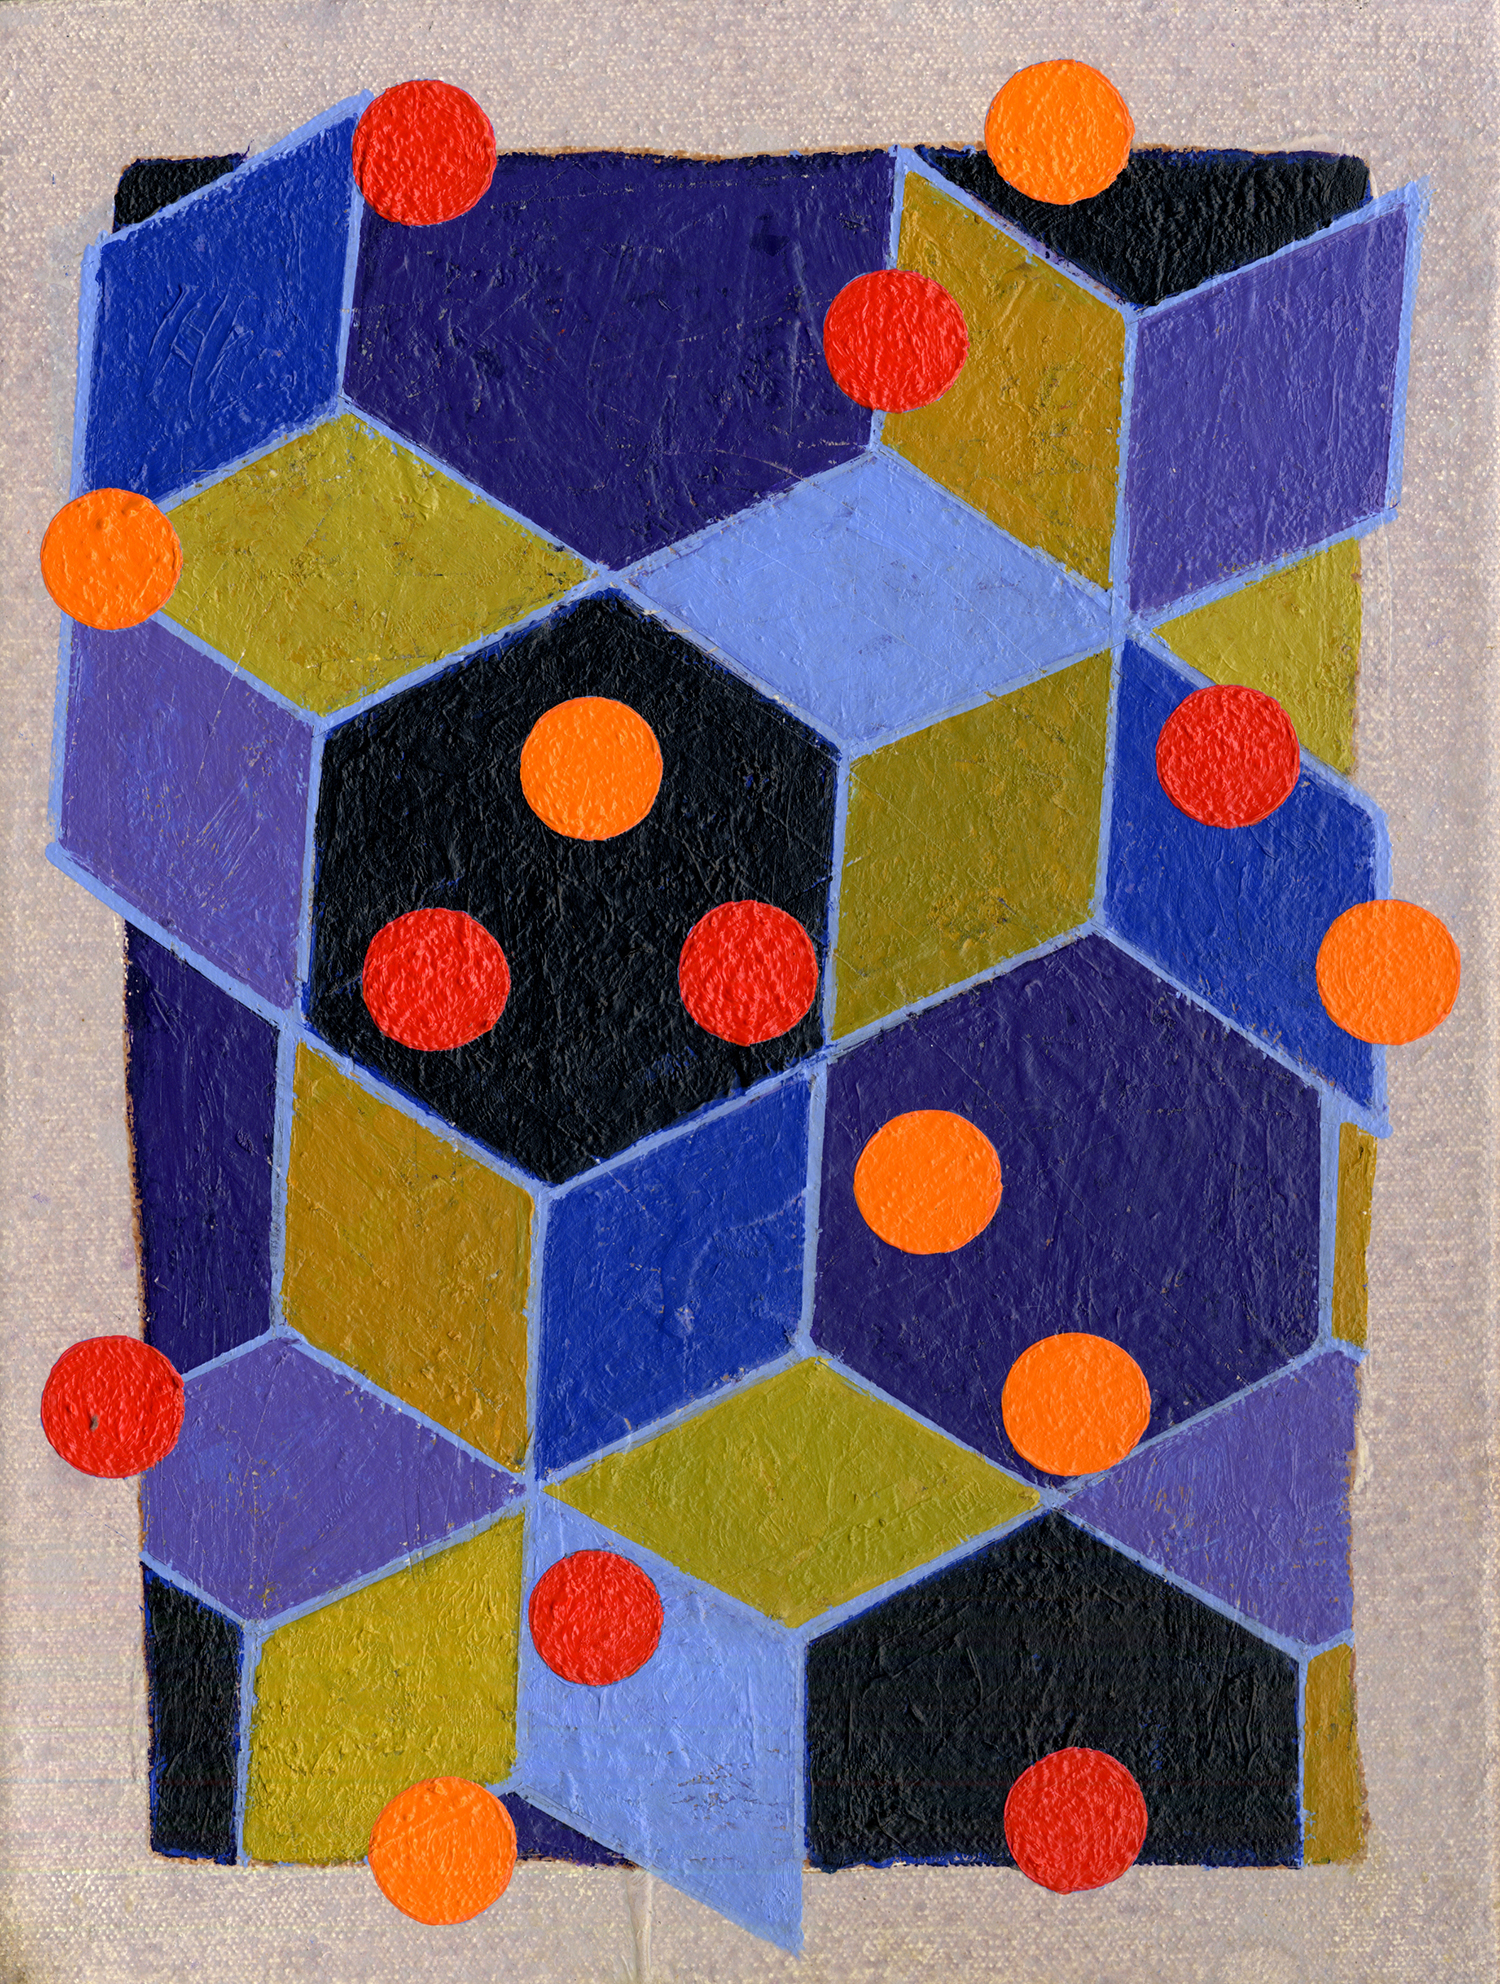 S1_08  , 2008, oil and wax on canvas, 12 x 9 in.